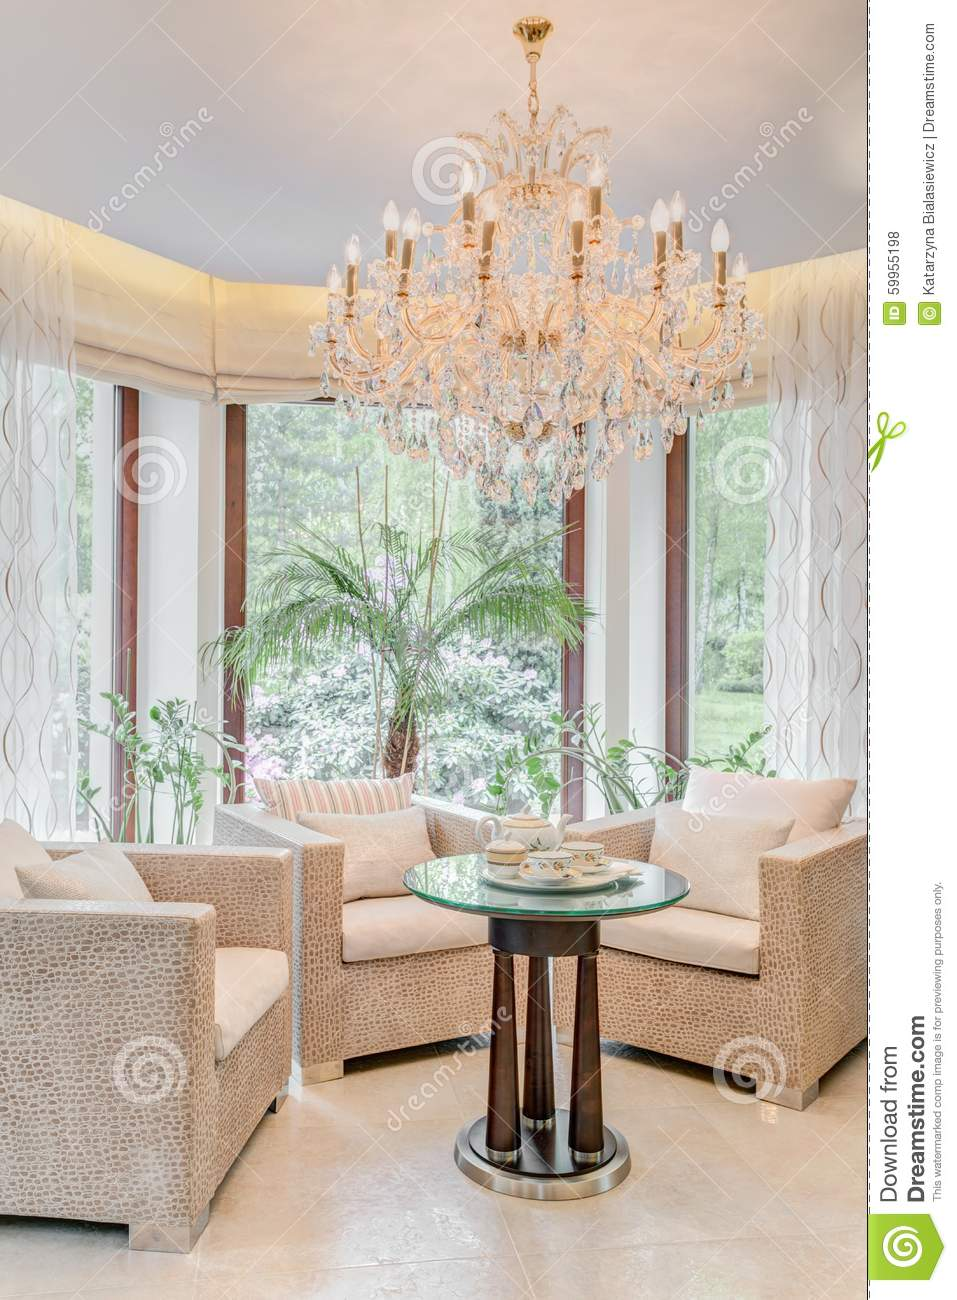 Elegant Armchairs In Living Room Stock Photo - Image of ...